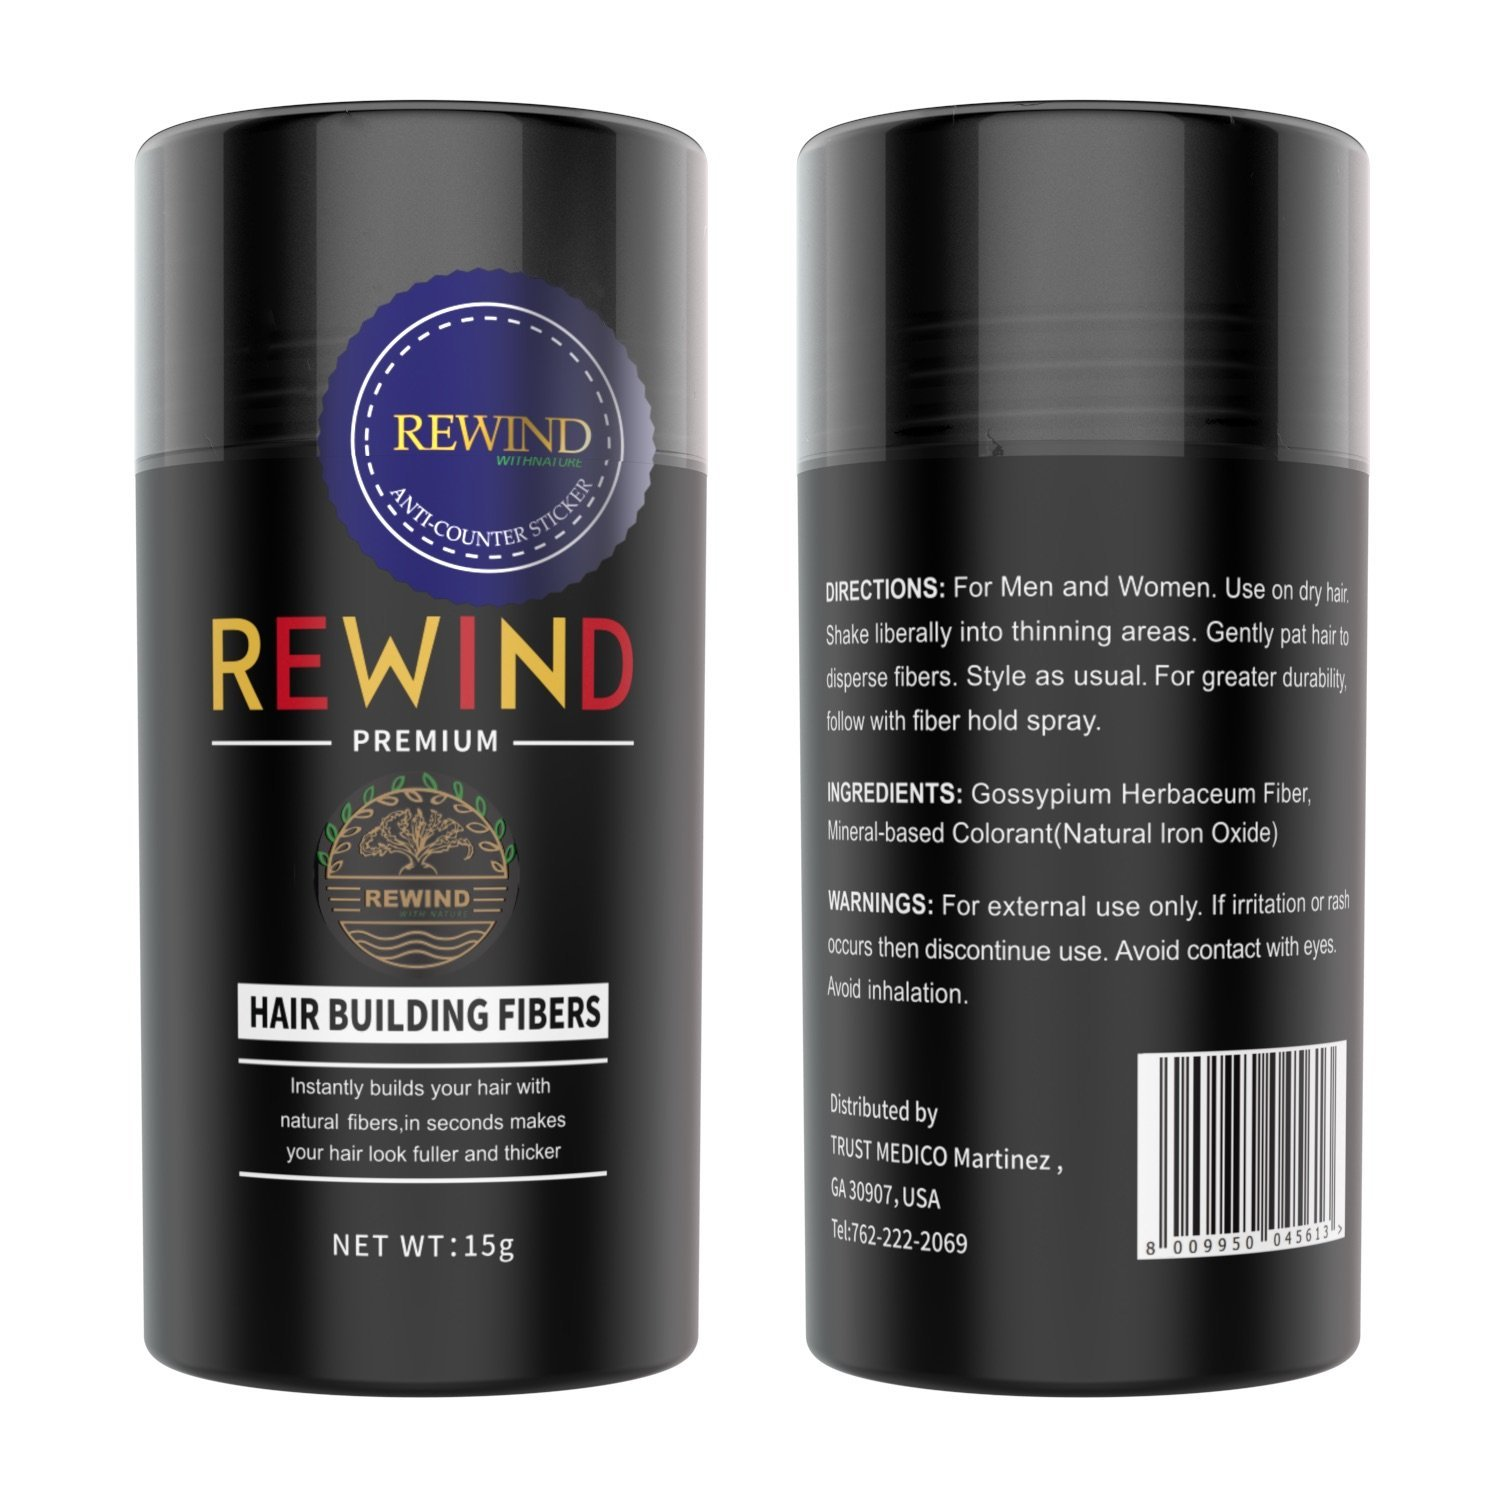 Hair Building Fibers Conceal Thinning Hair Unisex by Rewind With Nature 15g (Black)